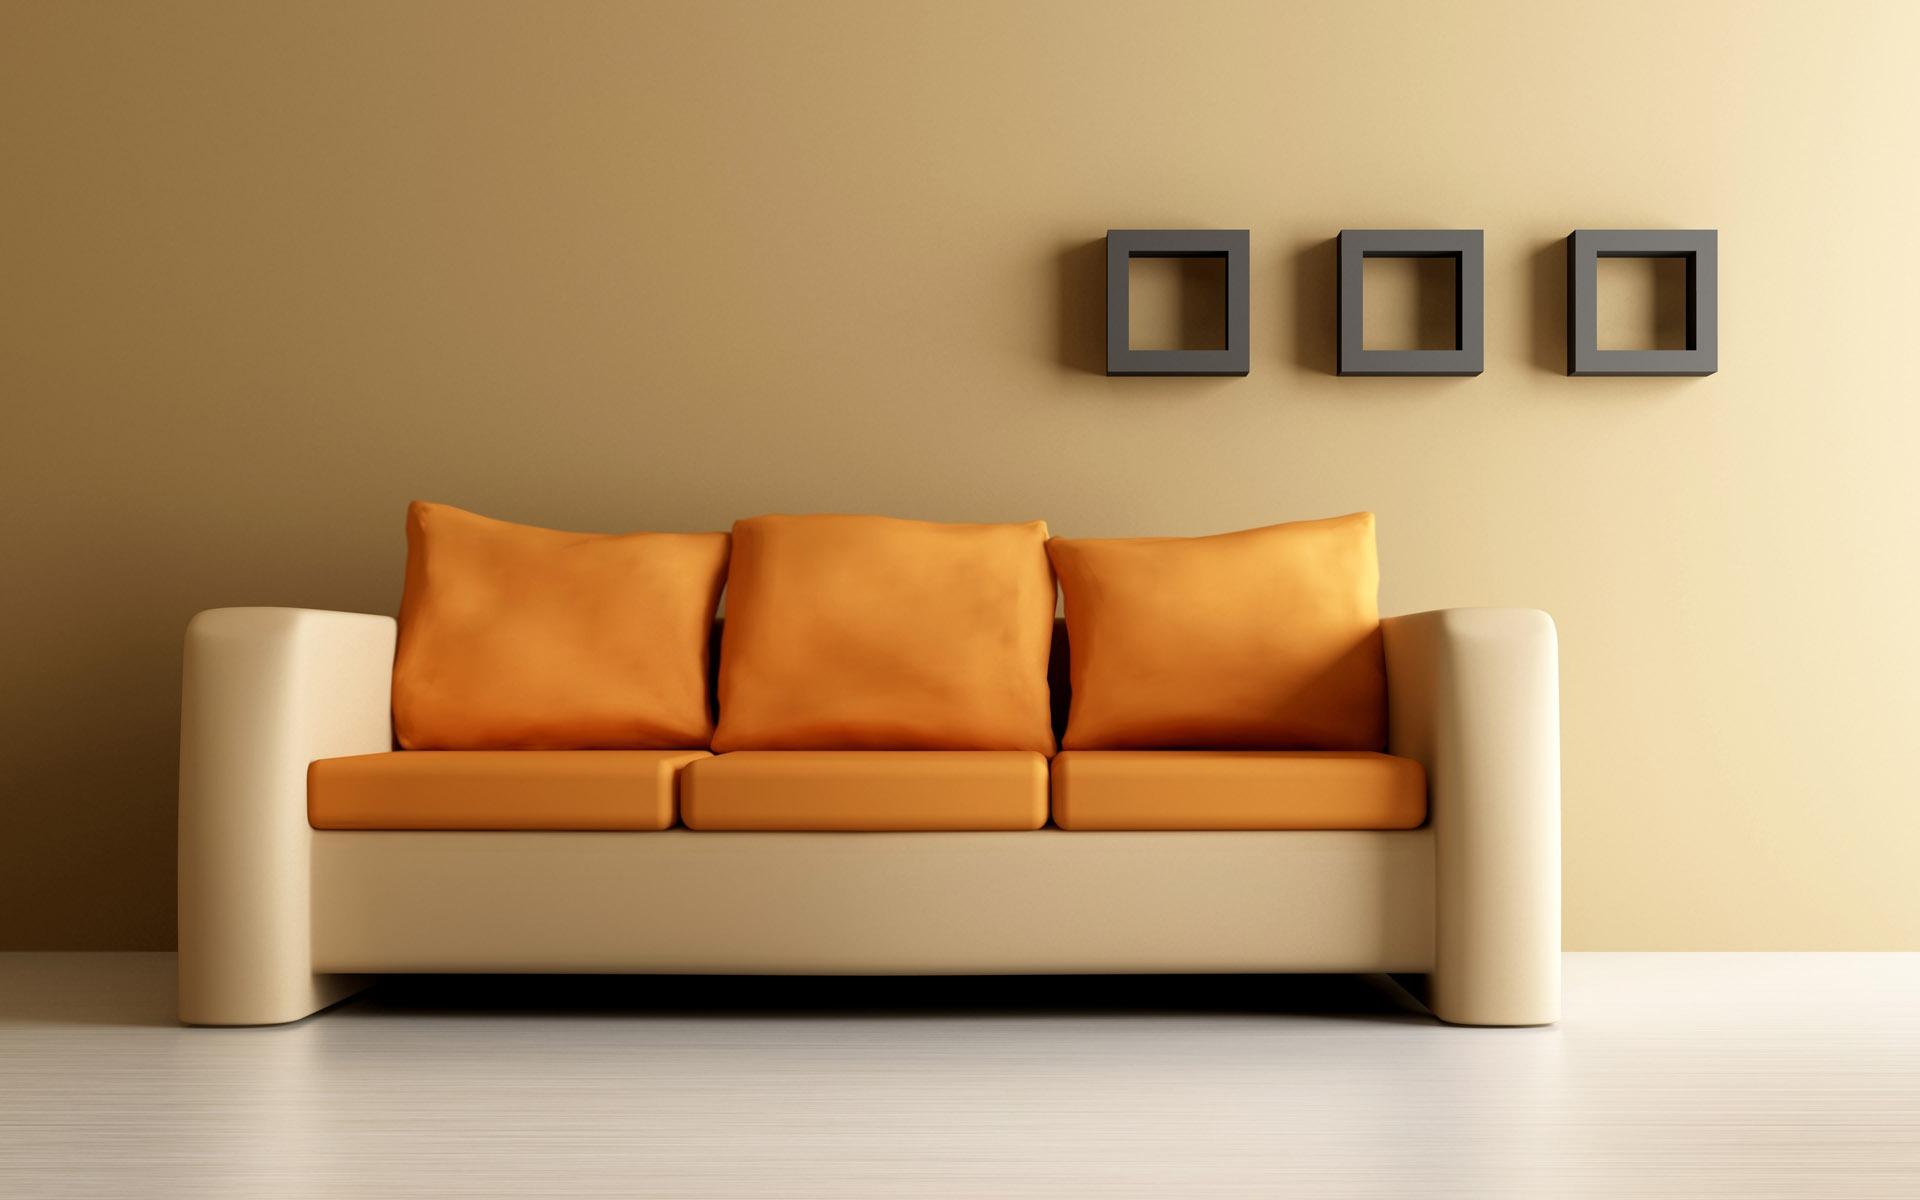 Orange Couch Wallpaper Interior Design Other